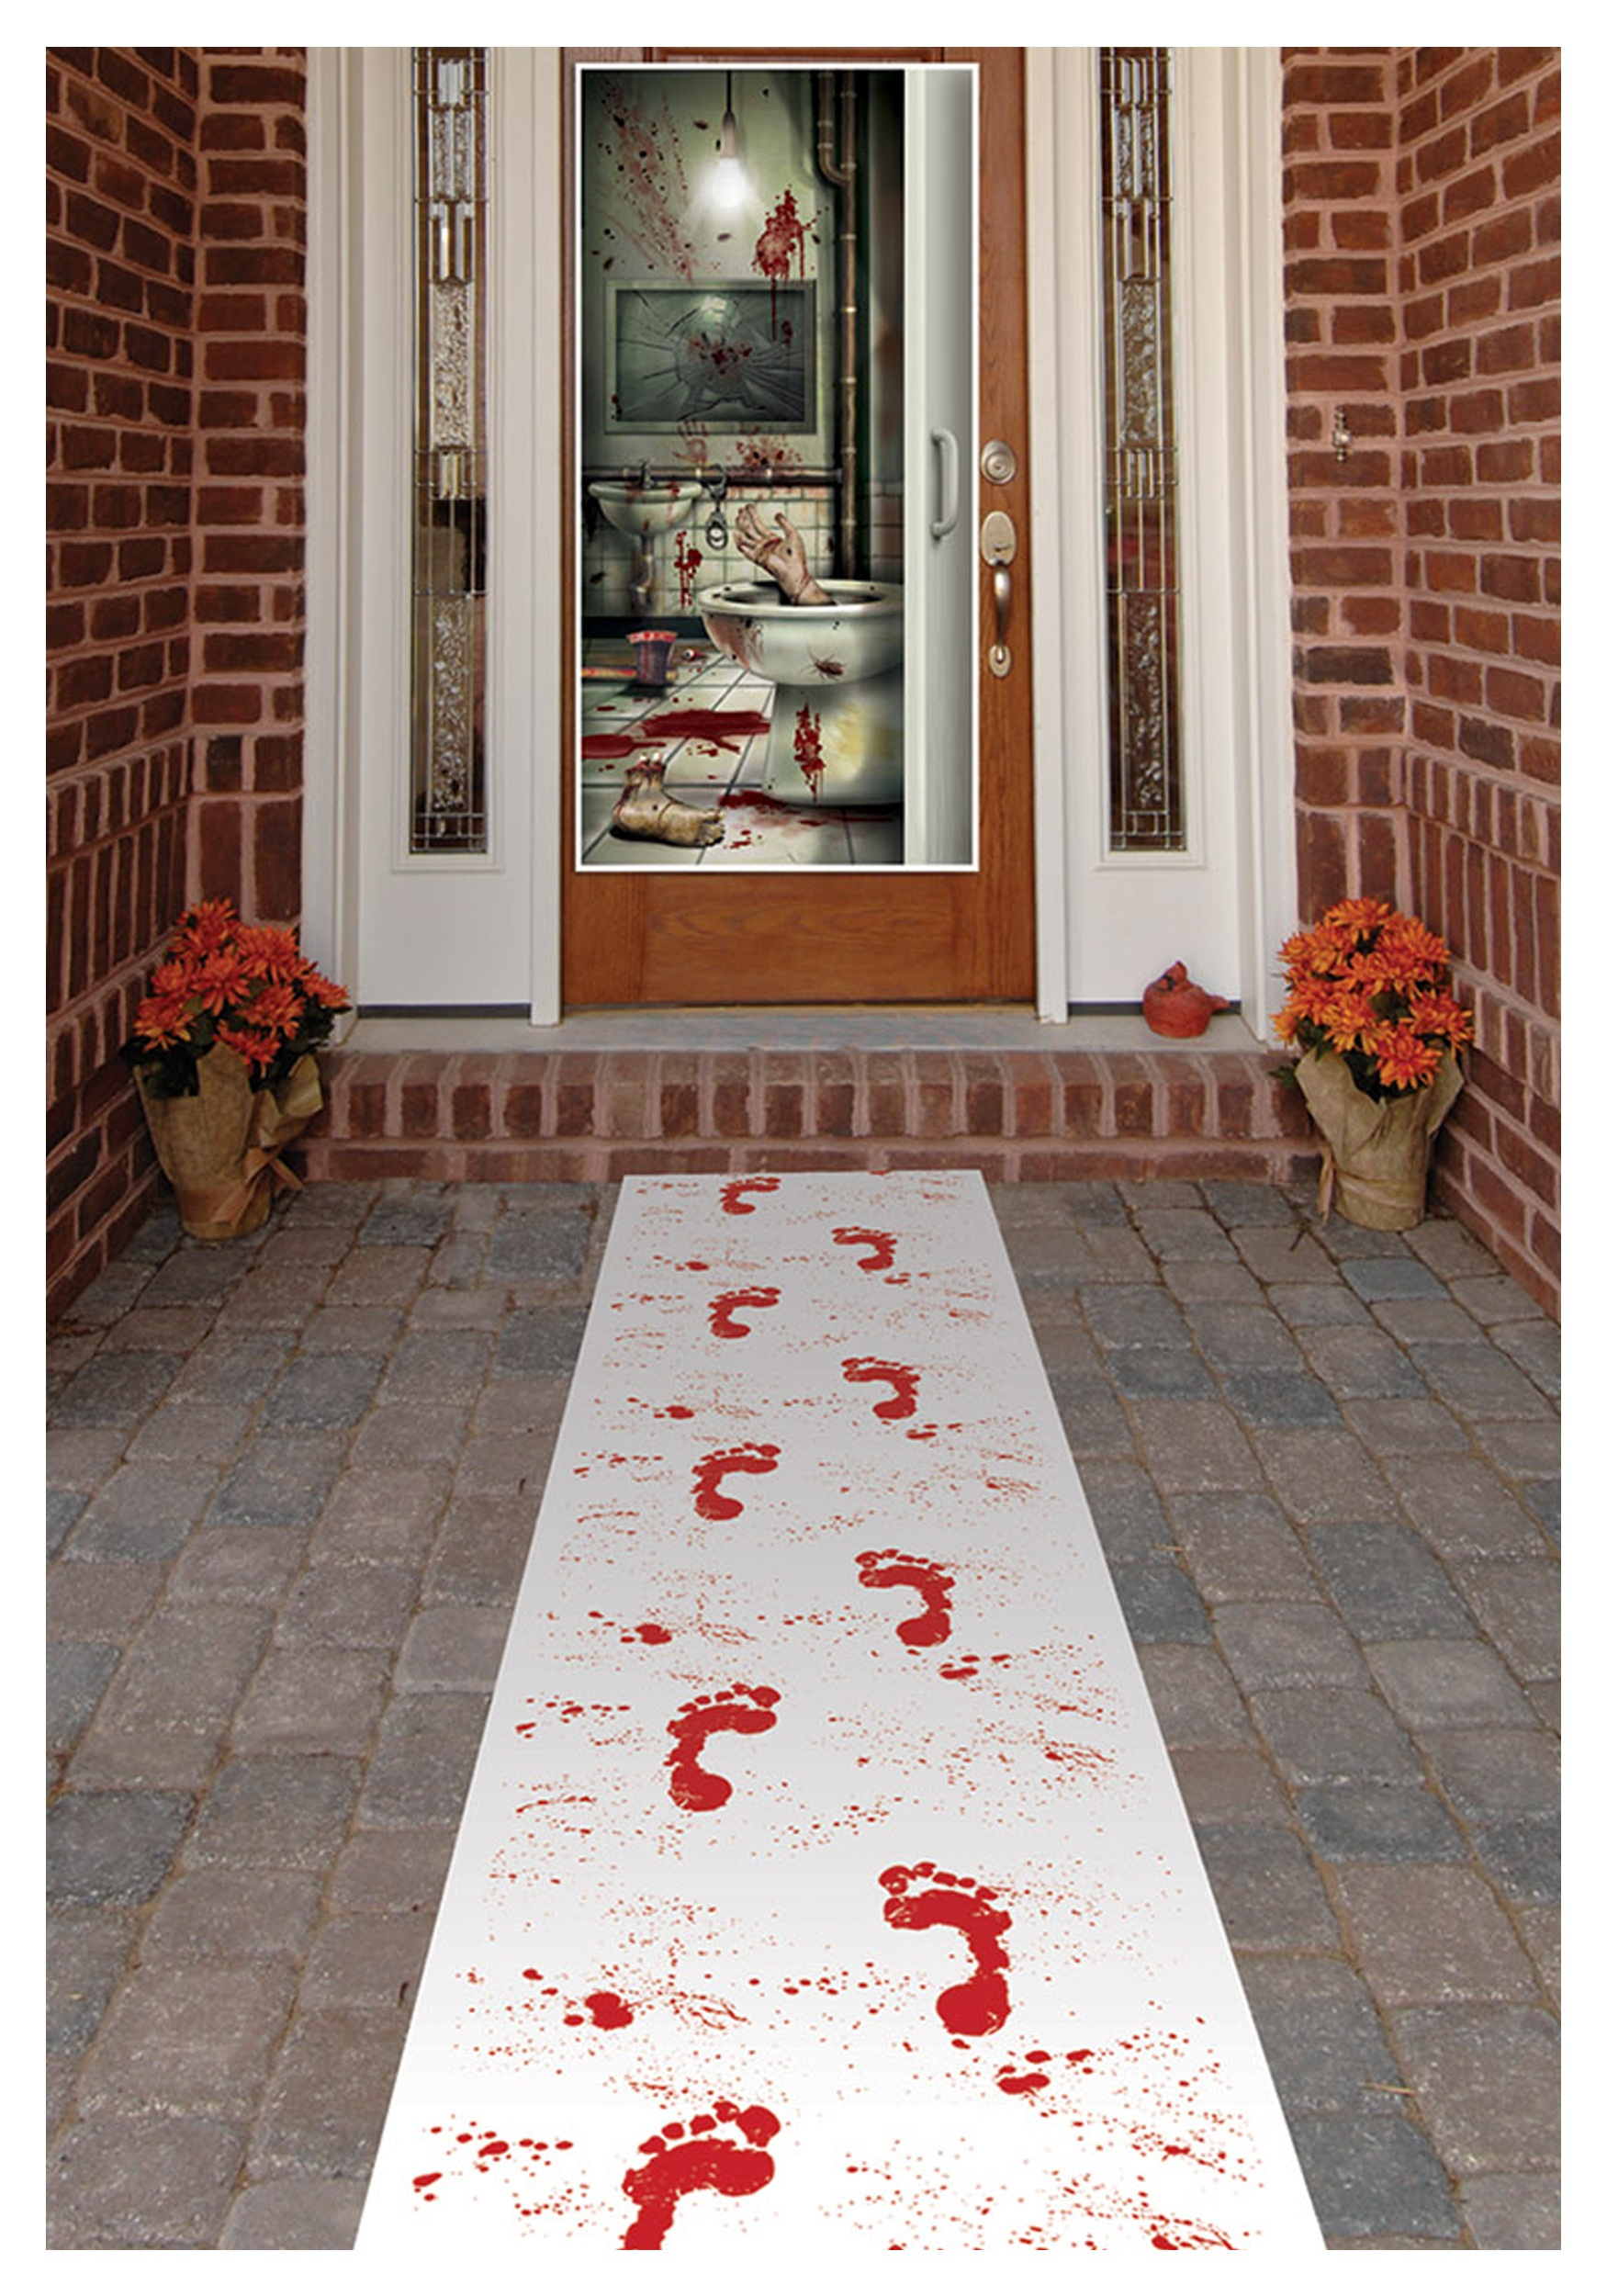 Bloody_Footprints_Runner